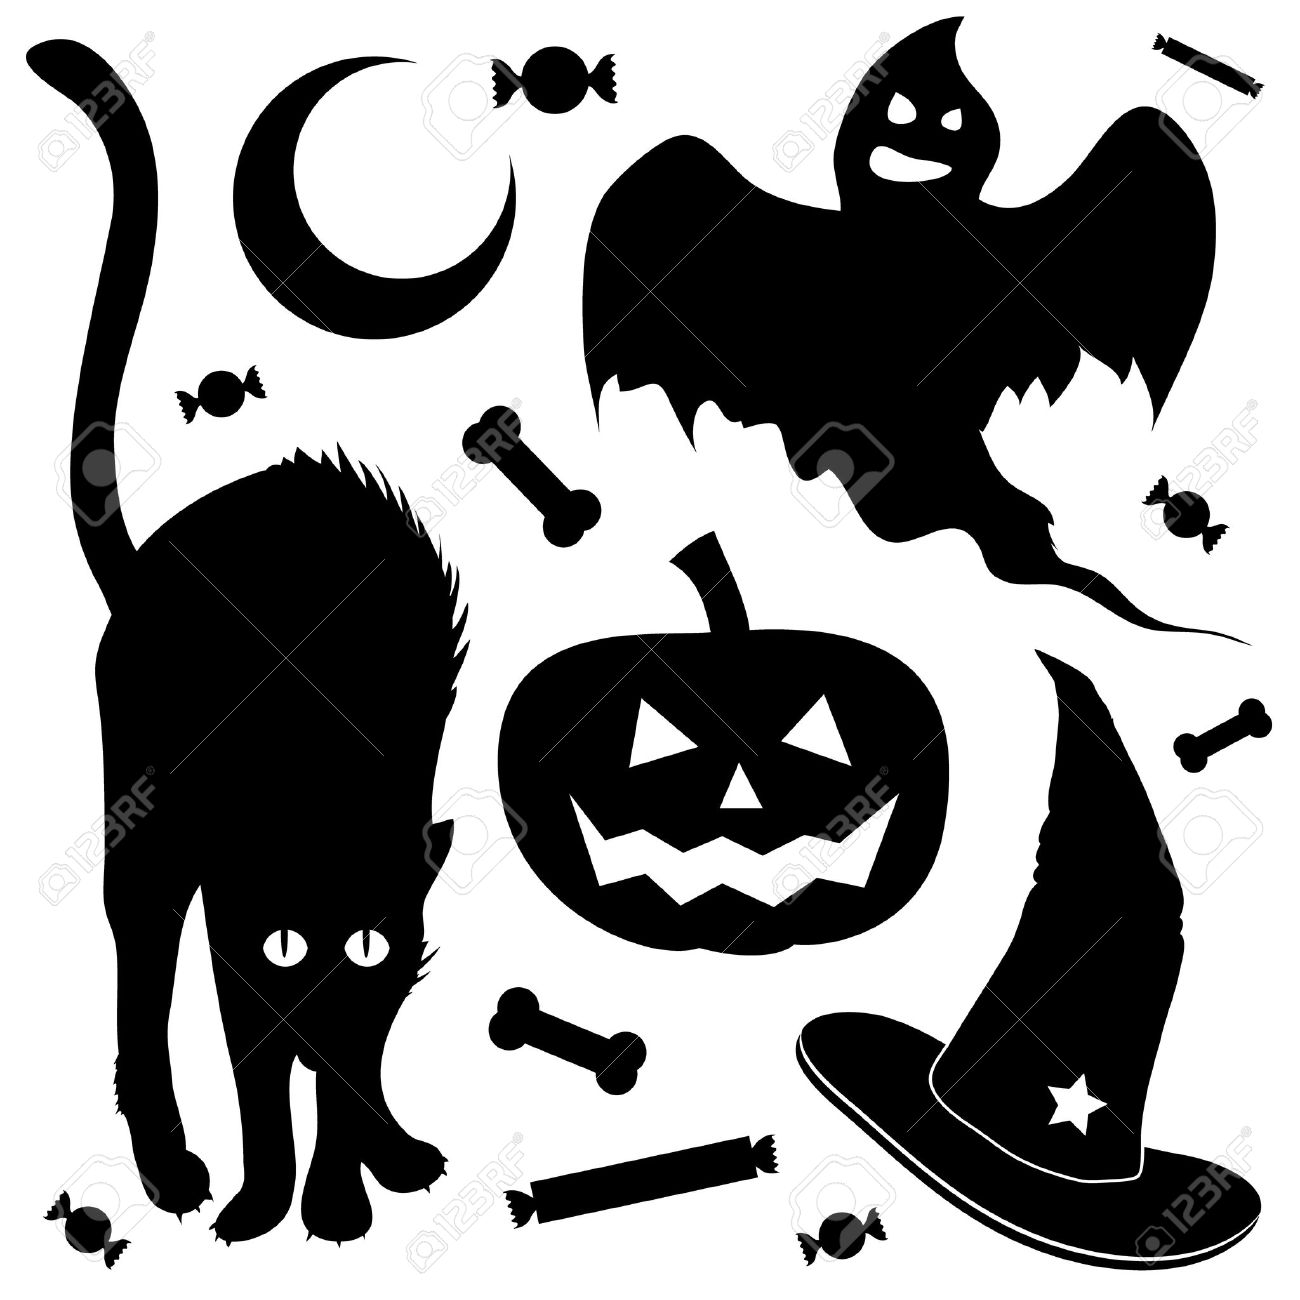 Halloween Design Elements Silhouette Set. Includes Black Cat ...